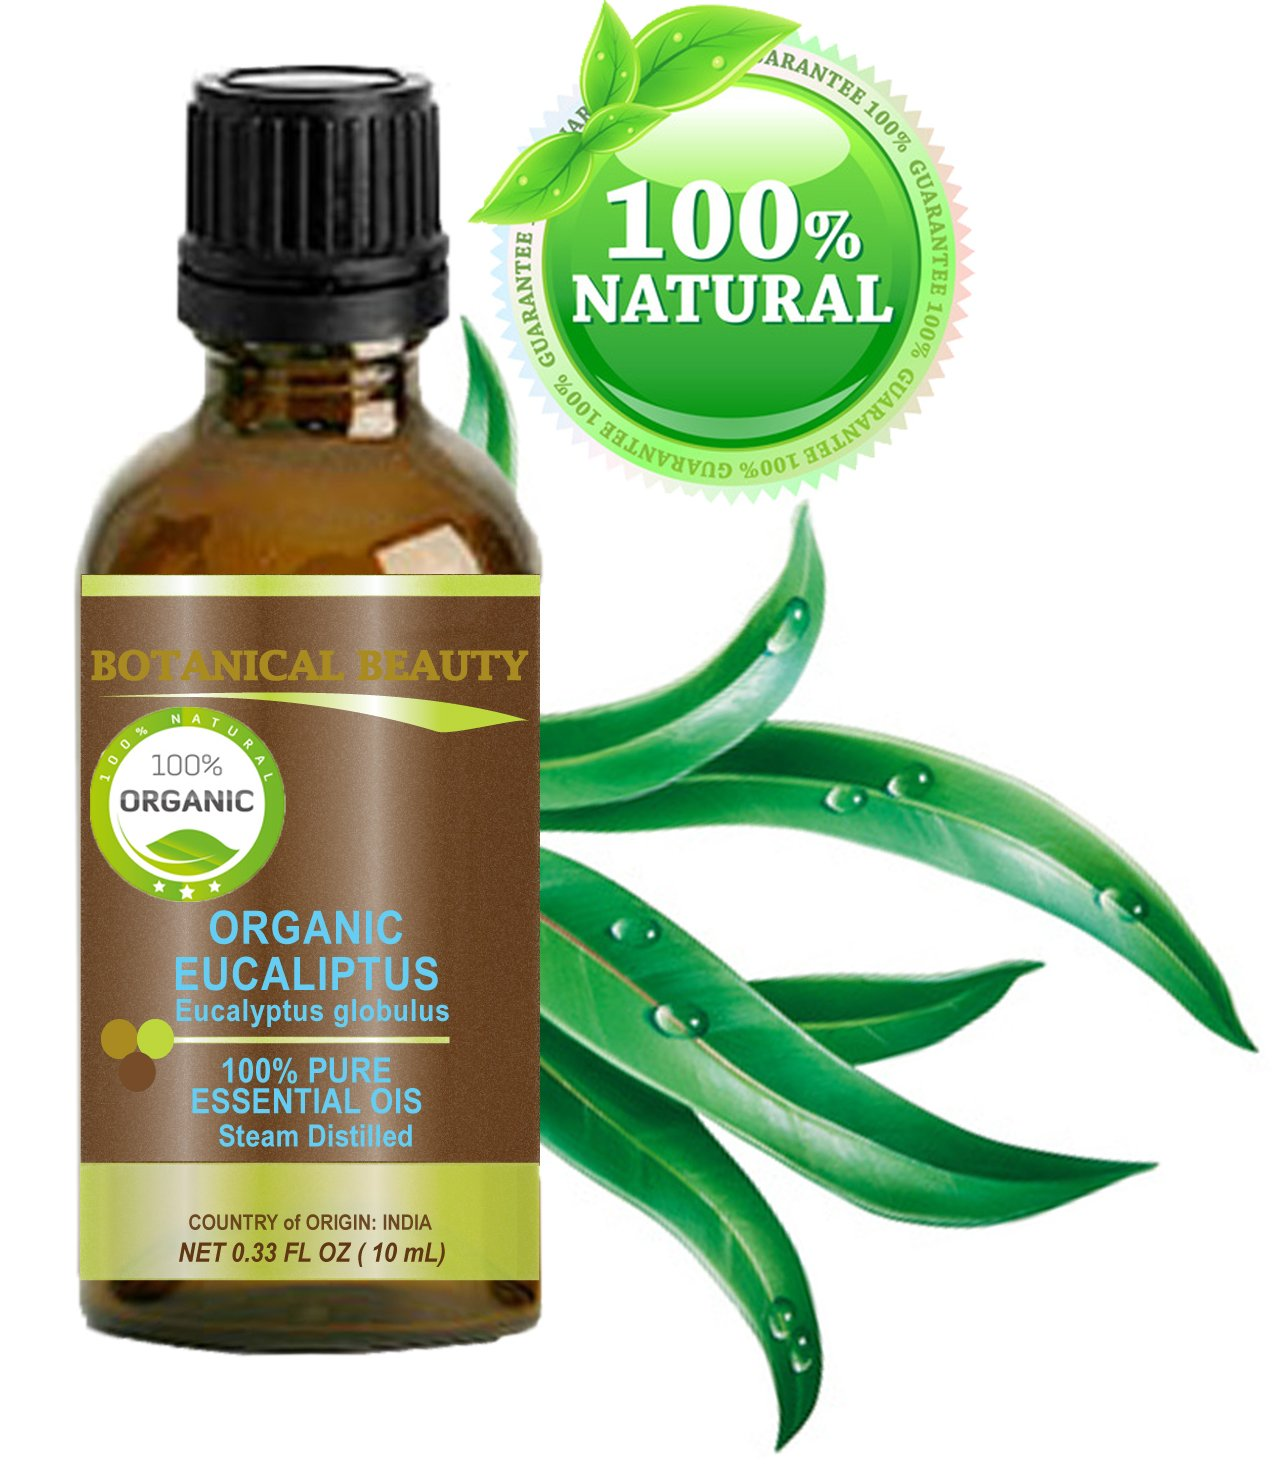 Organic EUCALYPTUS ESSENTIAL OIL, 100% Pure/Undiluted/Therapeutic Grade/Steam Distilled/Certified Organic. 0.33 oz-10 ml by Botanical Beauty